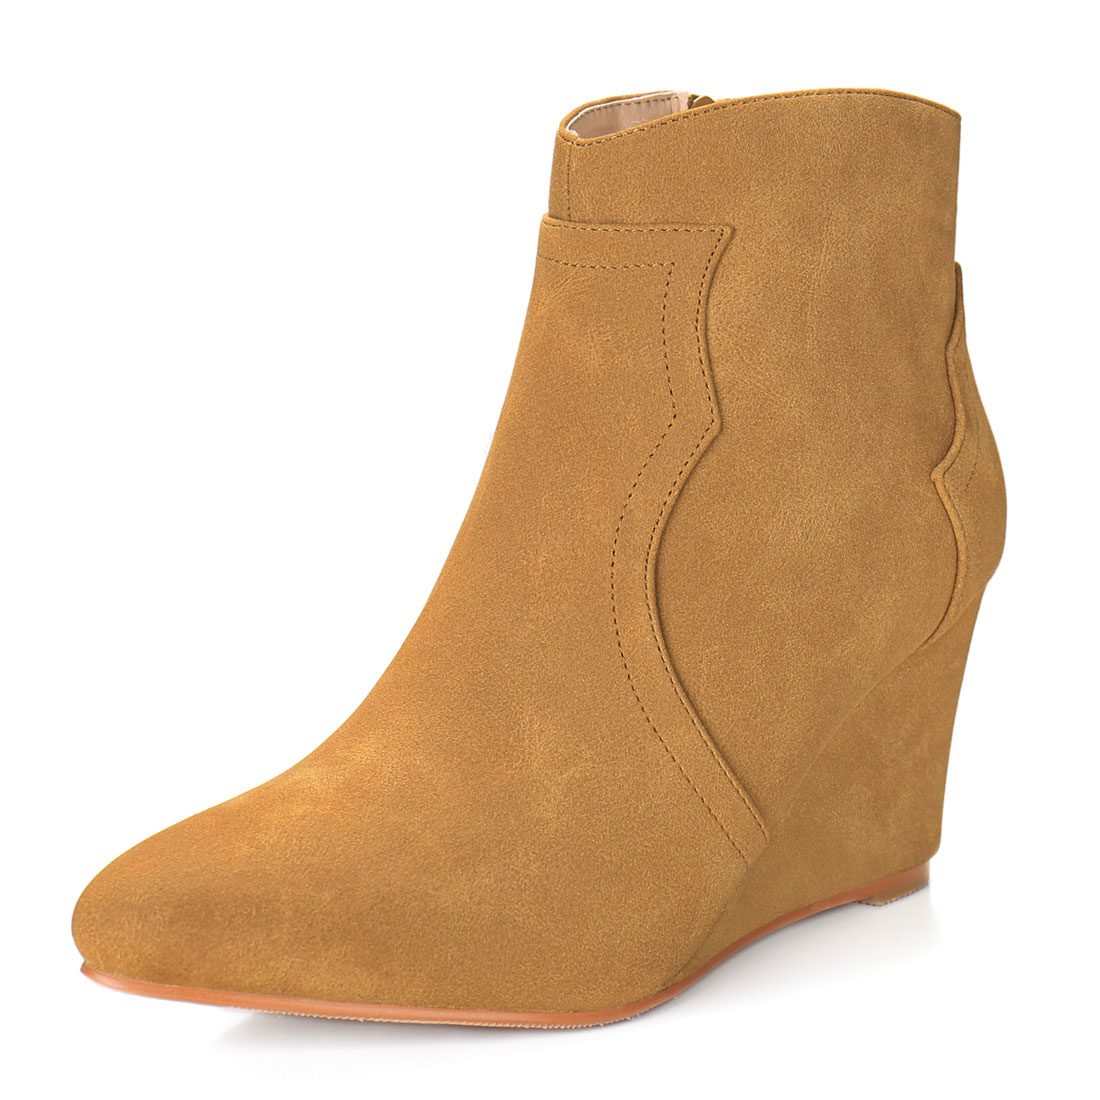 Women Pointed Toe Zipper Wedge Heel Ankle Booties Camel US 6